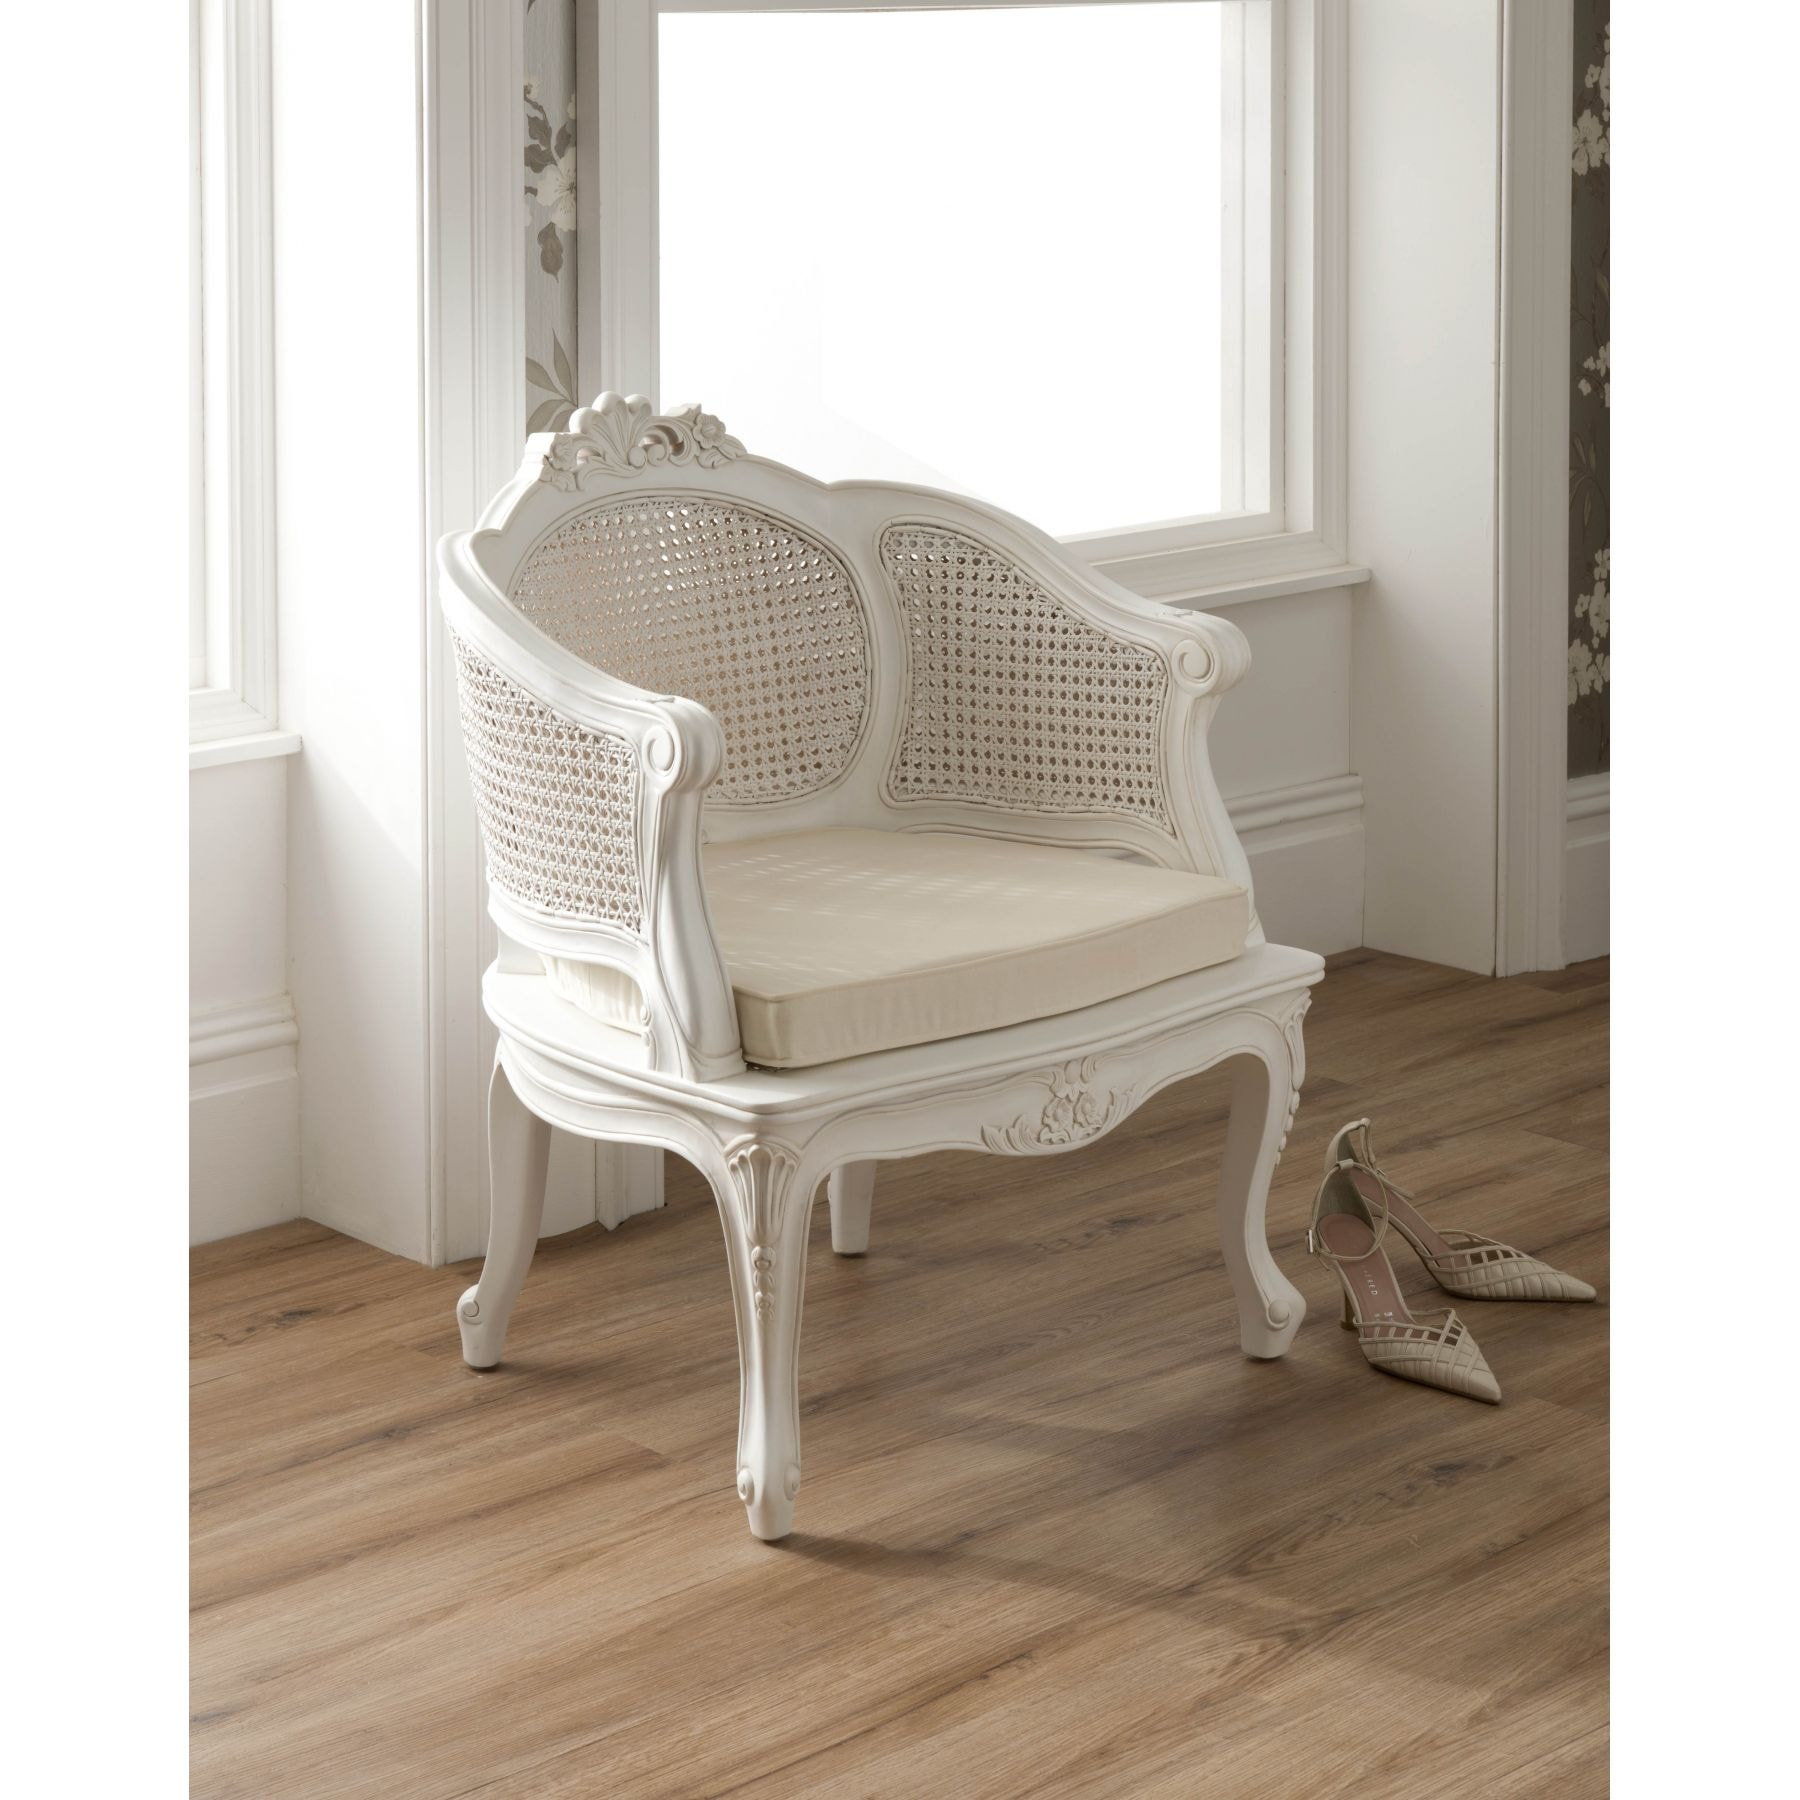 Antique french chair - La Roce Bundle Deal 11 French Furniture From Homesdirect 365 Uk